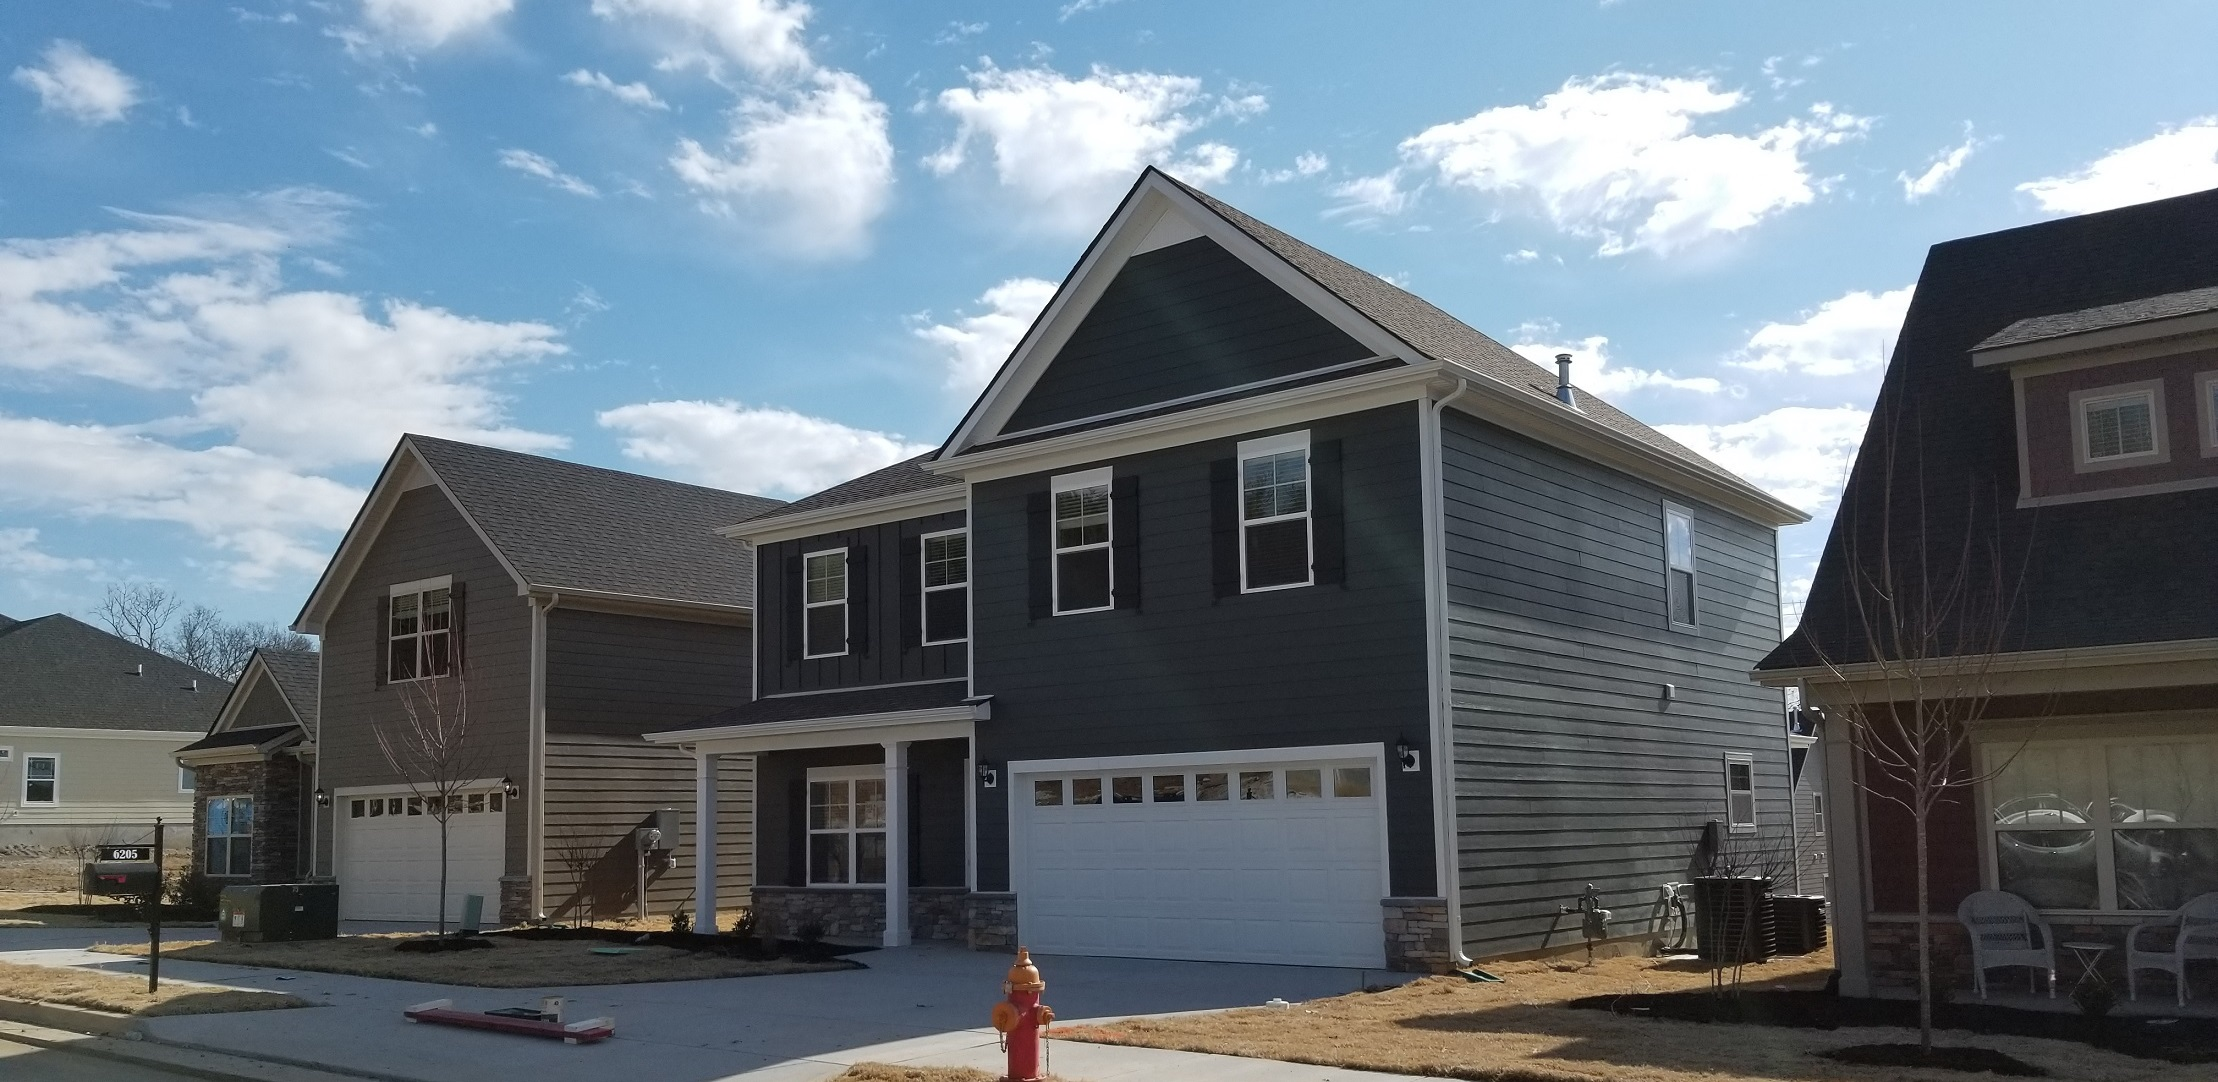 Home daley home inspections nashville home inspectors for New home building inspections